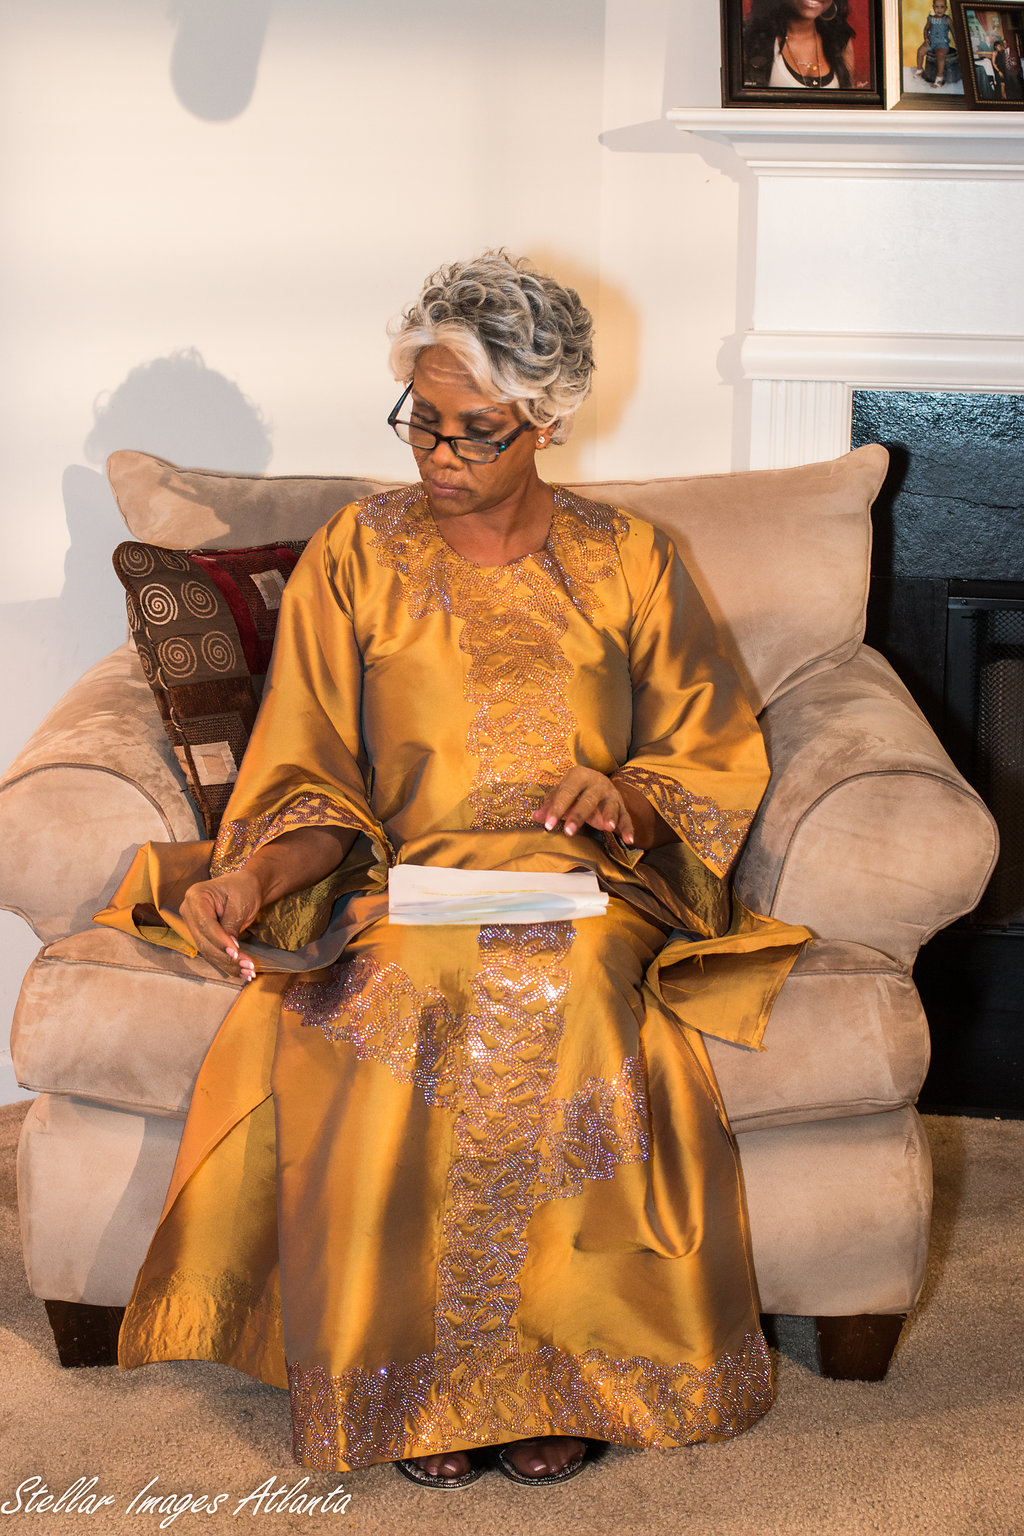 "VIVICA A. FOX AS GRANDMA   Vivica A. Fox was born in South Bend, Indiana, on July 30, 1964, and is the daughter of Everlyena, a pharmaceutical technician, and William Fox, a private school administrator. She is of Native American and African-American descent and is proud of her heritage. She is a graduate of Arlington High School in Indianapolis, Indiana, and, after graduating, moved to California to attend college. Vivica went to Golden West College and graduated with an Associate Art degree in Social Sciences. While in California, she started acting professionally, first on soap operas, such as  Generations  (1989),  Days of Our Lives  (1965) and  The Young and the Restless  (1973). In another early role, she played  Patti LaBelle 's fashion designer daughter, ""Charisse Chamberlain"", on the NBC-TV series,  Out All Night  (1992). Her first big break was in the film,  Independence Day  (1996), along with  Will Smith , and also  Set It Off  (1996). She has earned critical acclaim for her portrayal of ""Maxine"" in the 1997 motion picture,  Soul Food  (1997), which netted her MTV Movie Award and NAACP Image Award nominations. In 2000, she was casted in the medical drama,  City of Angels  (2000), as ""Dr. Lillian Price"". She has had roles in many other movies ever since, such as:  Teaching Mrs. Tingle  (1999),  Two Can Play That Game  (2001) and  Kill Bill: Vol. 1  (2003). In 2004, Fox was in an episode of  Punk'd  (2003), where her pregnant friend pretended to go into labor, but they became angry when a paramedic appeared to care more about taking pictures than delivering the baby. Vivica also took another television role, from 2004 to 2006, as she starred in the drama series,  1-800-Missing  (2003), on the Lifetime Television Network. In 2007, she was a contender on  Dancing with the Stars"